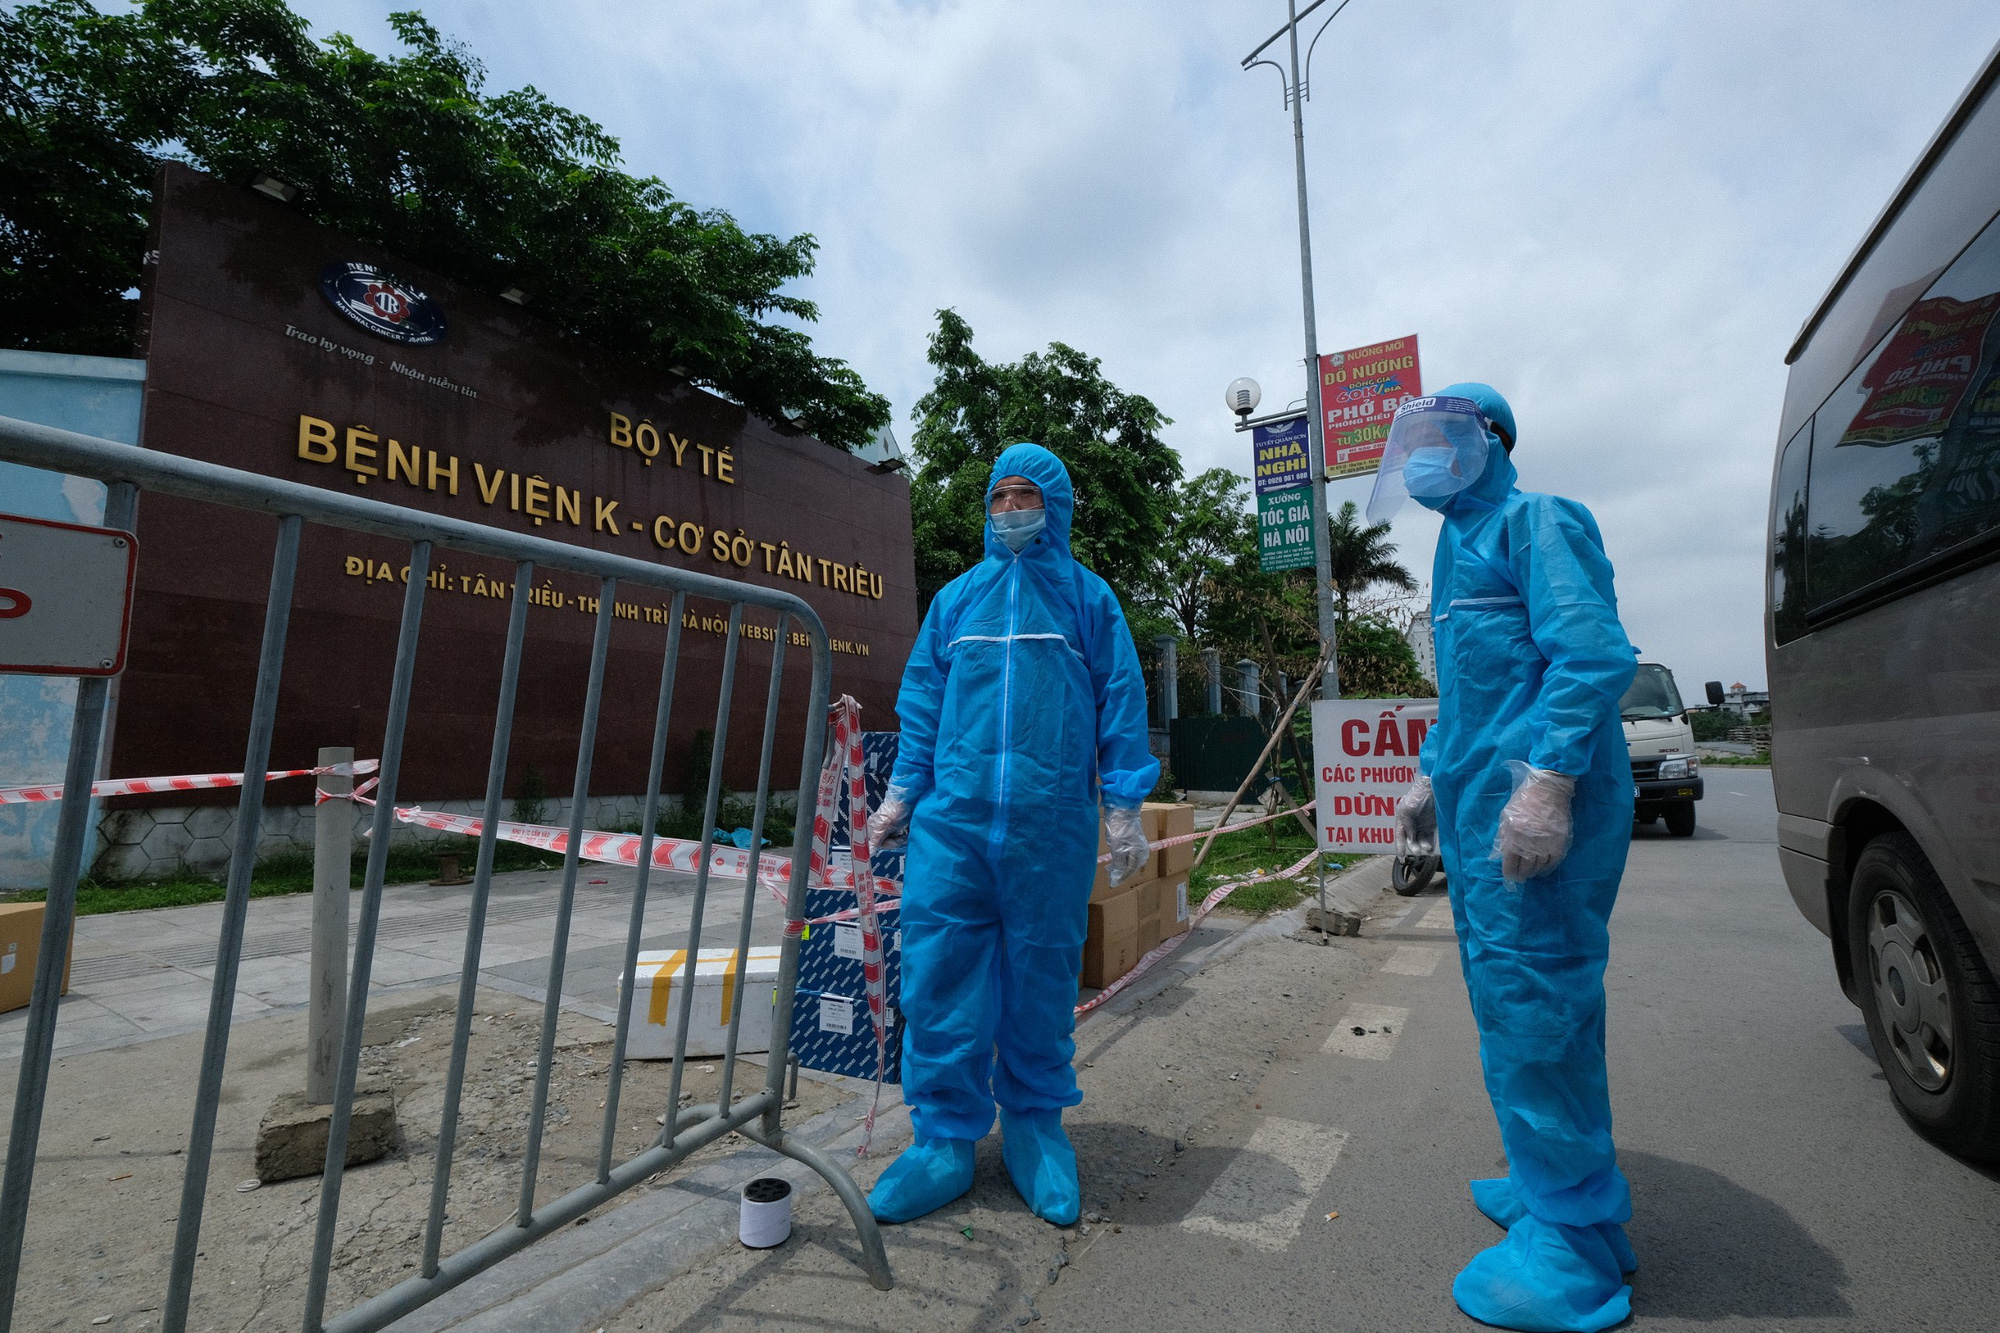 Local coronavirus infections surge after public holiday in Vietnam